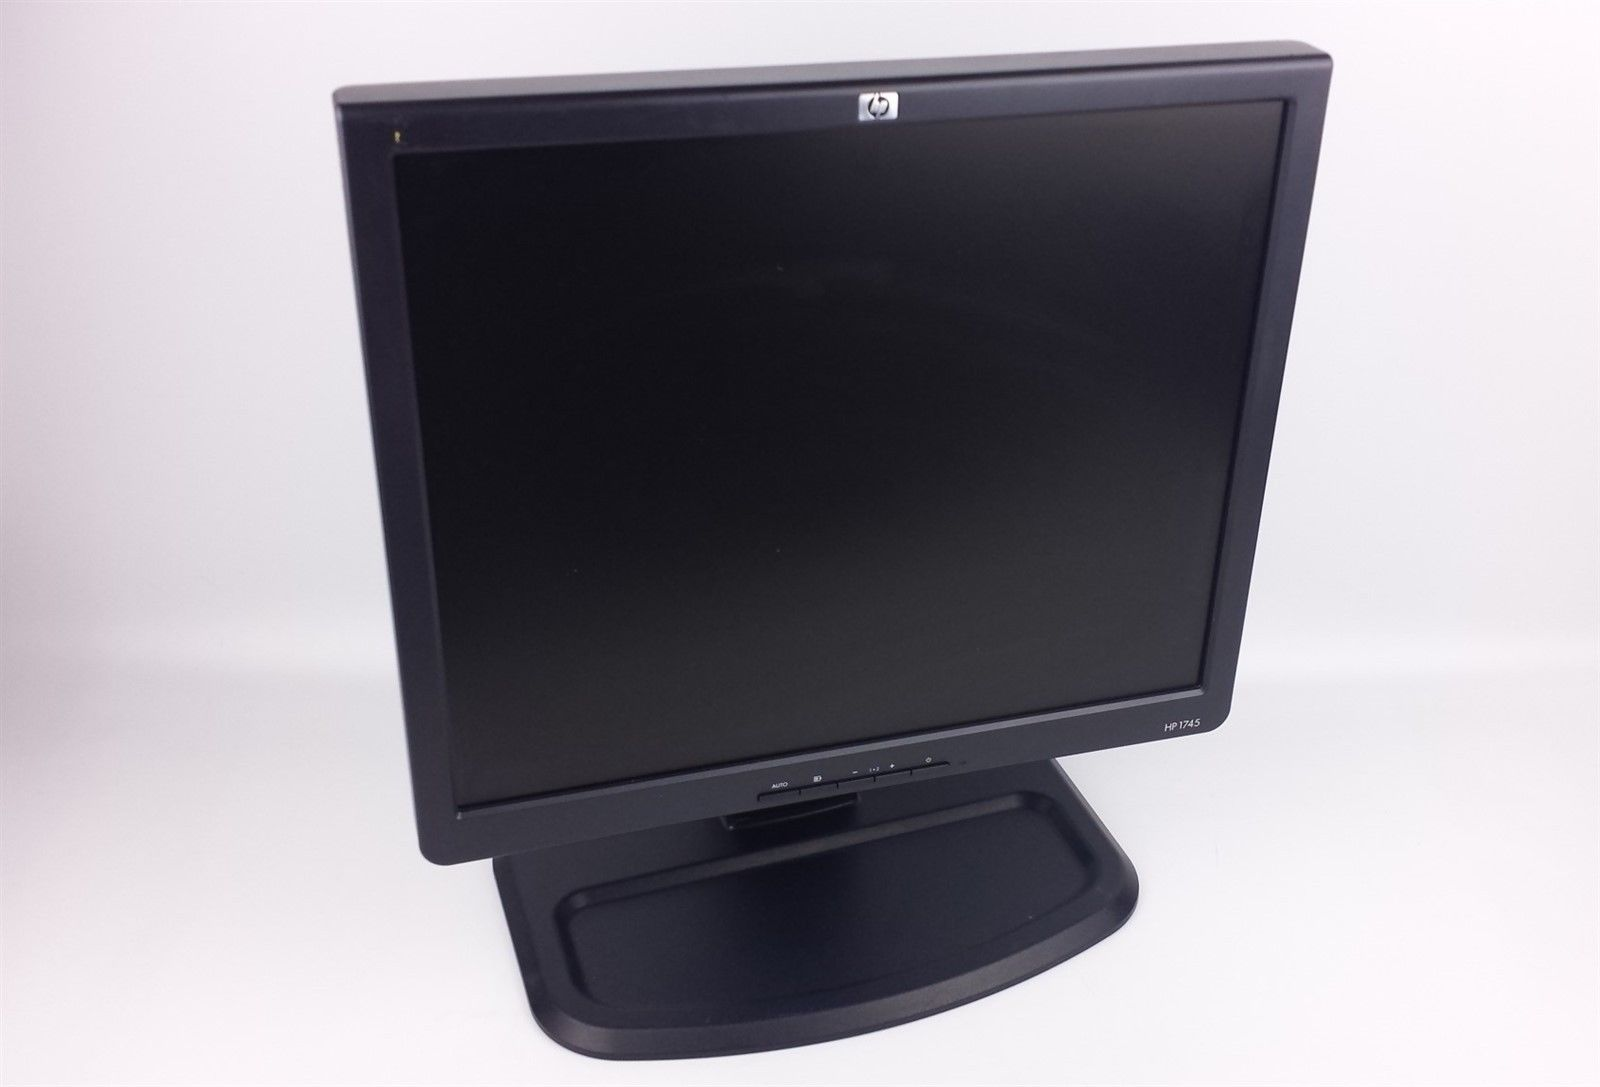 "HP L1745 LCD Flat Panel Display Computer Monitor 17"" with Tall Stand & Cables"